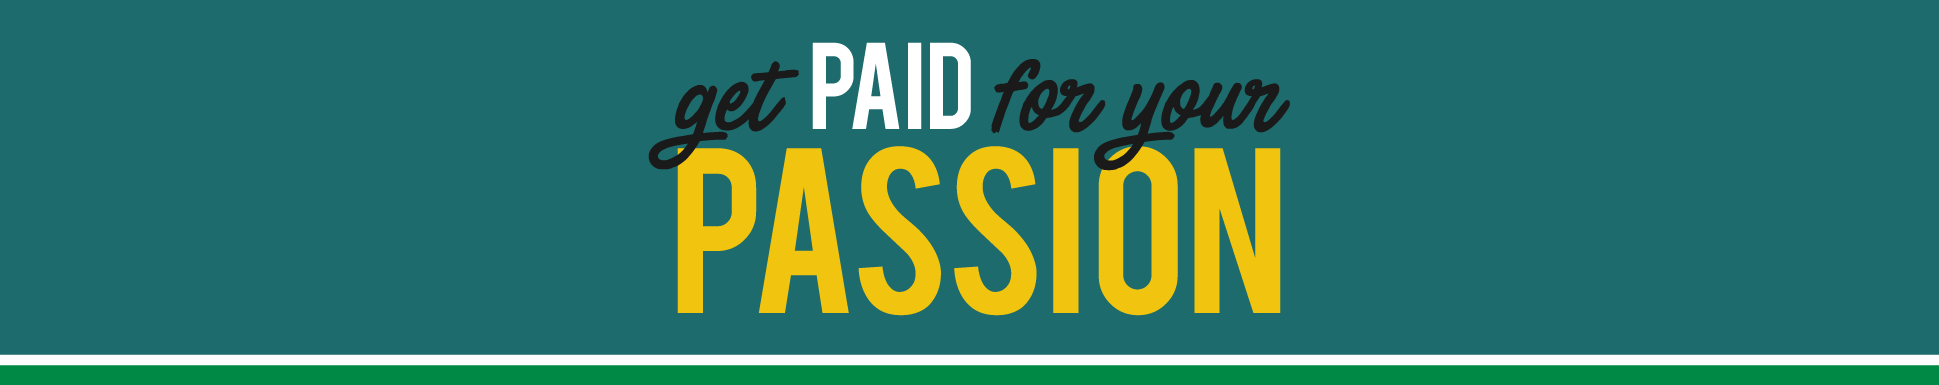 get paid for your passion